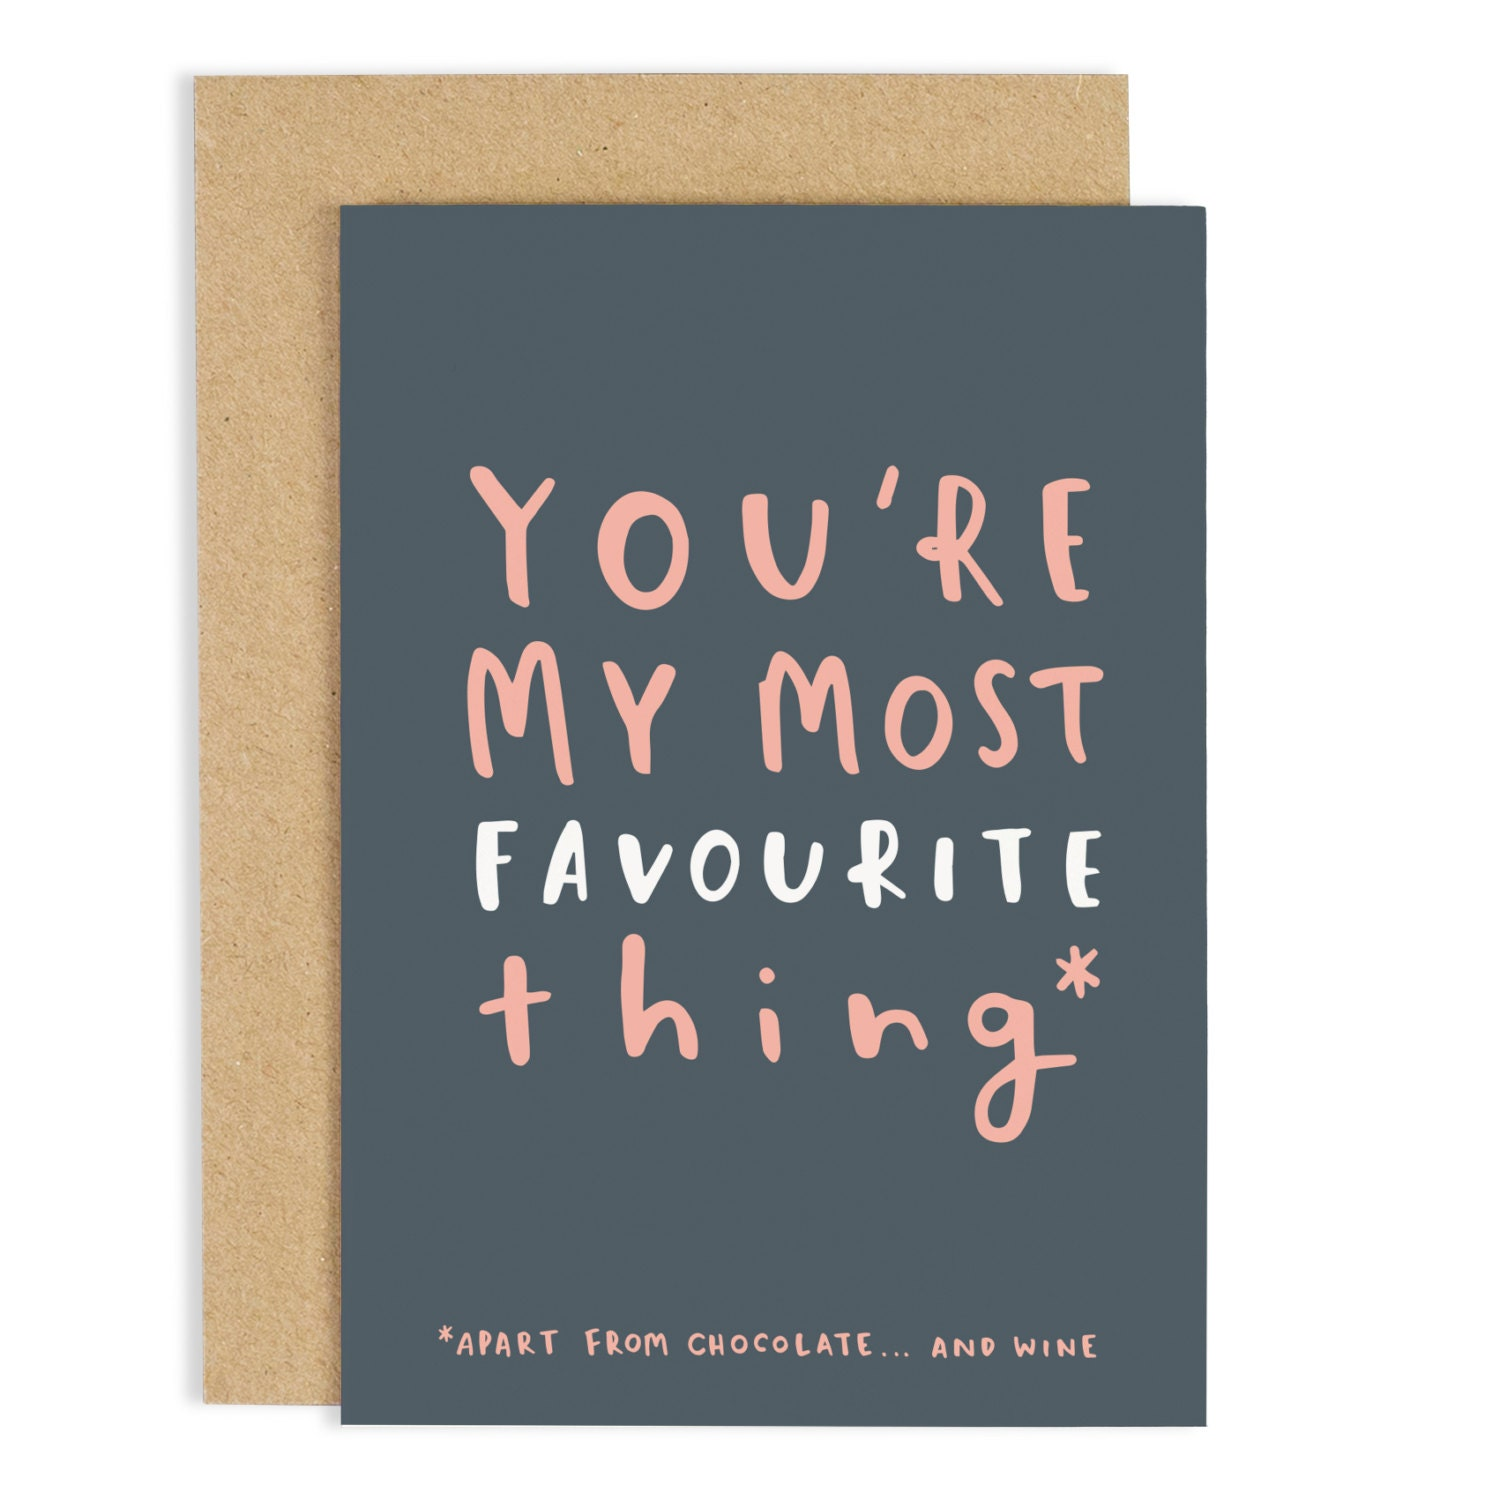 You're my most favourite thing card